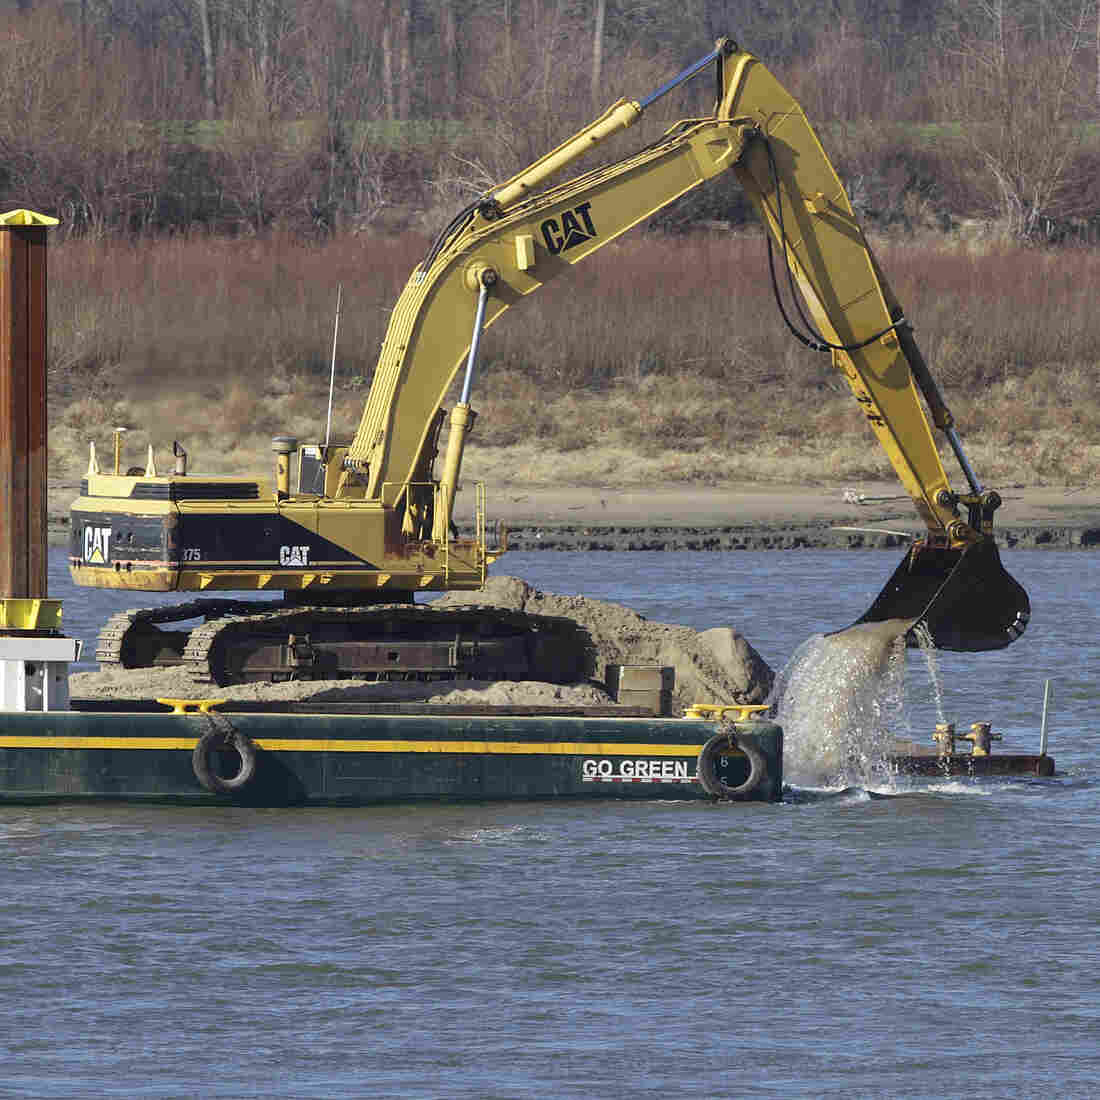 An excavator perched on a barge removes rocks from the Mississippi River in Thebes Ill.